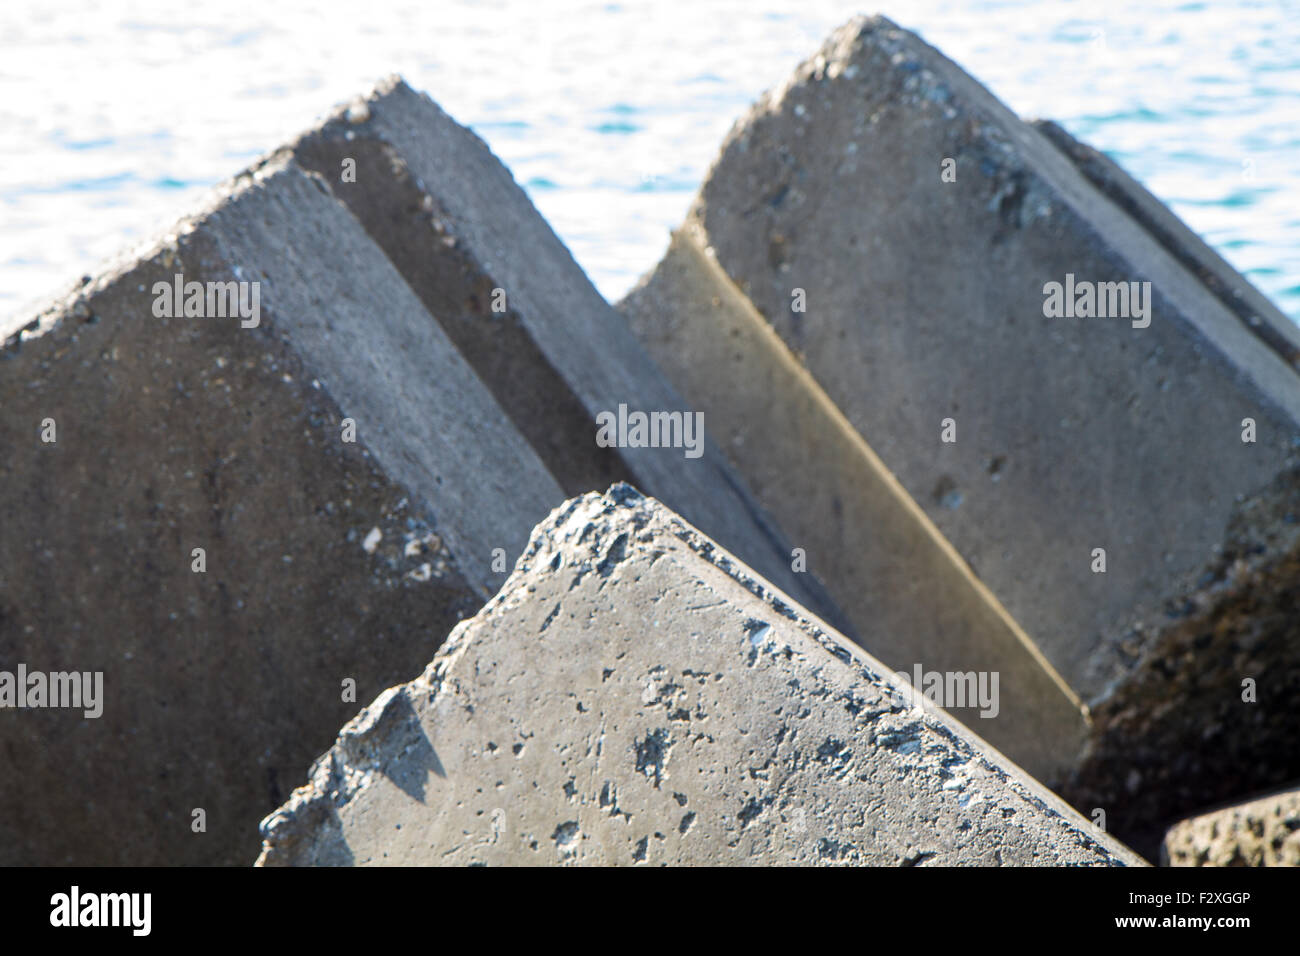 detail of breakwaters, geometric patterns, black and white - Stock Image